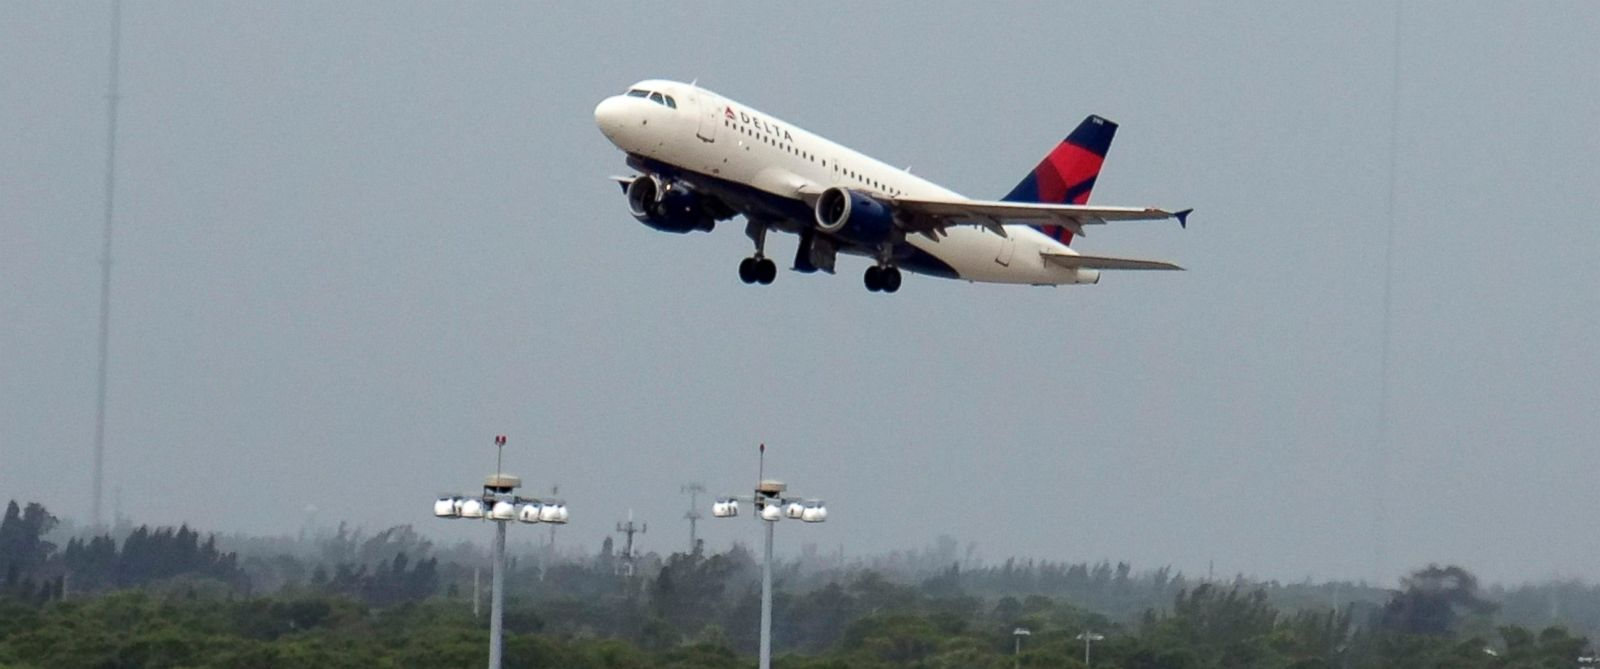 PHOTO: A Delta Airlines jet plane takes off from the Palm Beach Airport, Nov. 16, 2013.